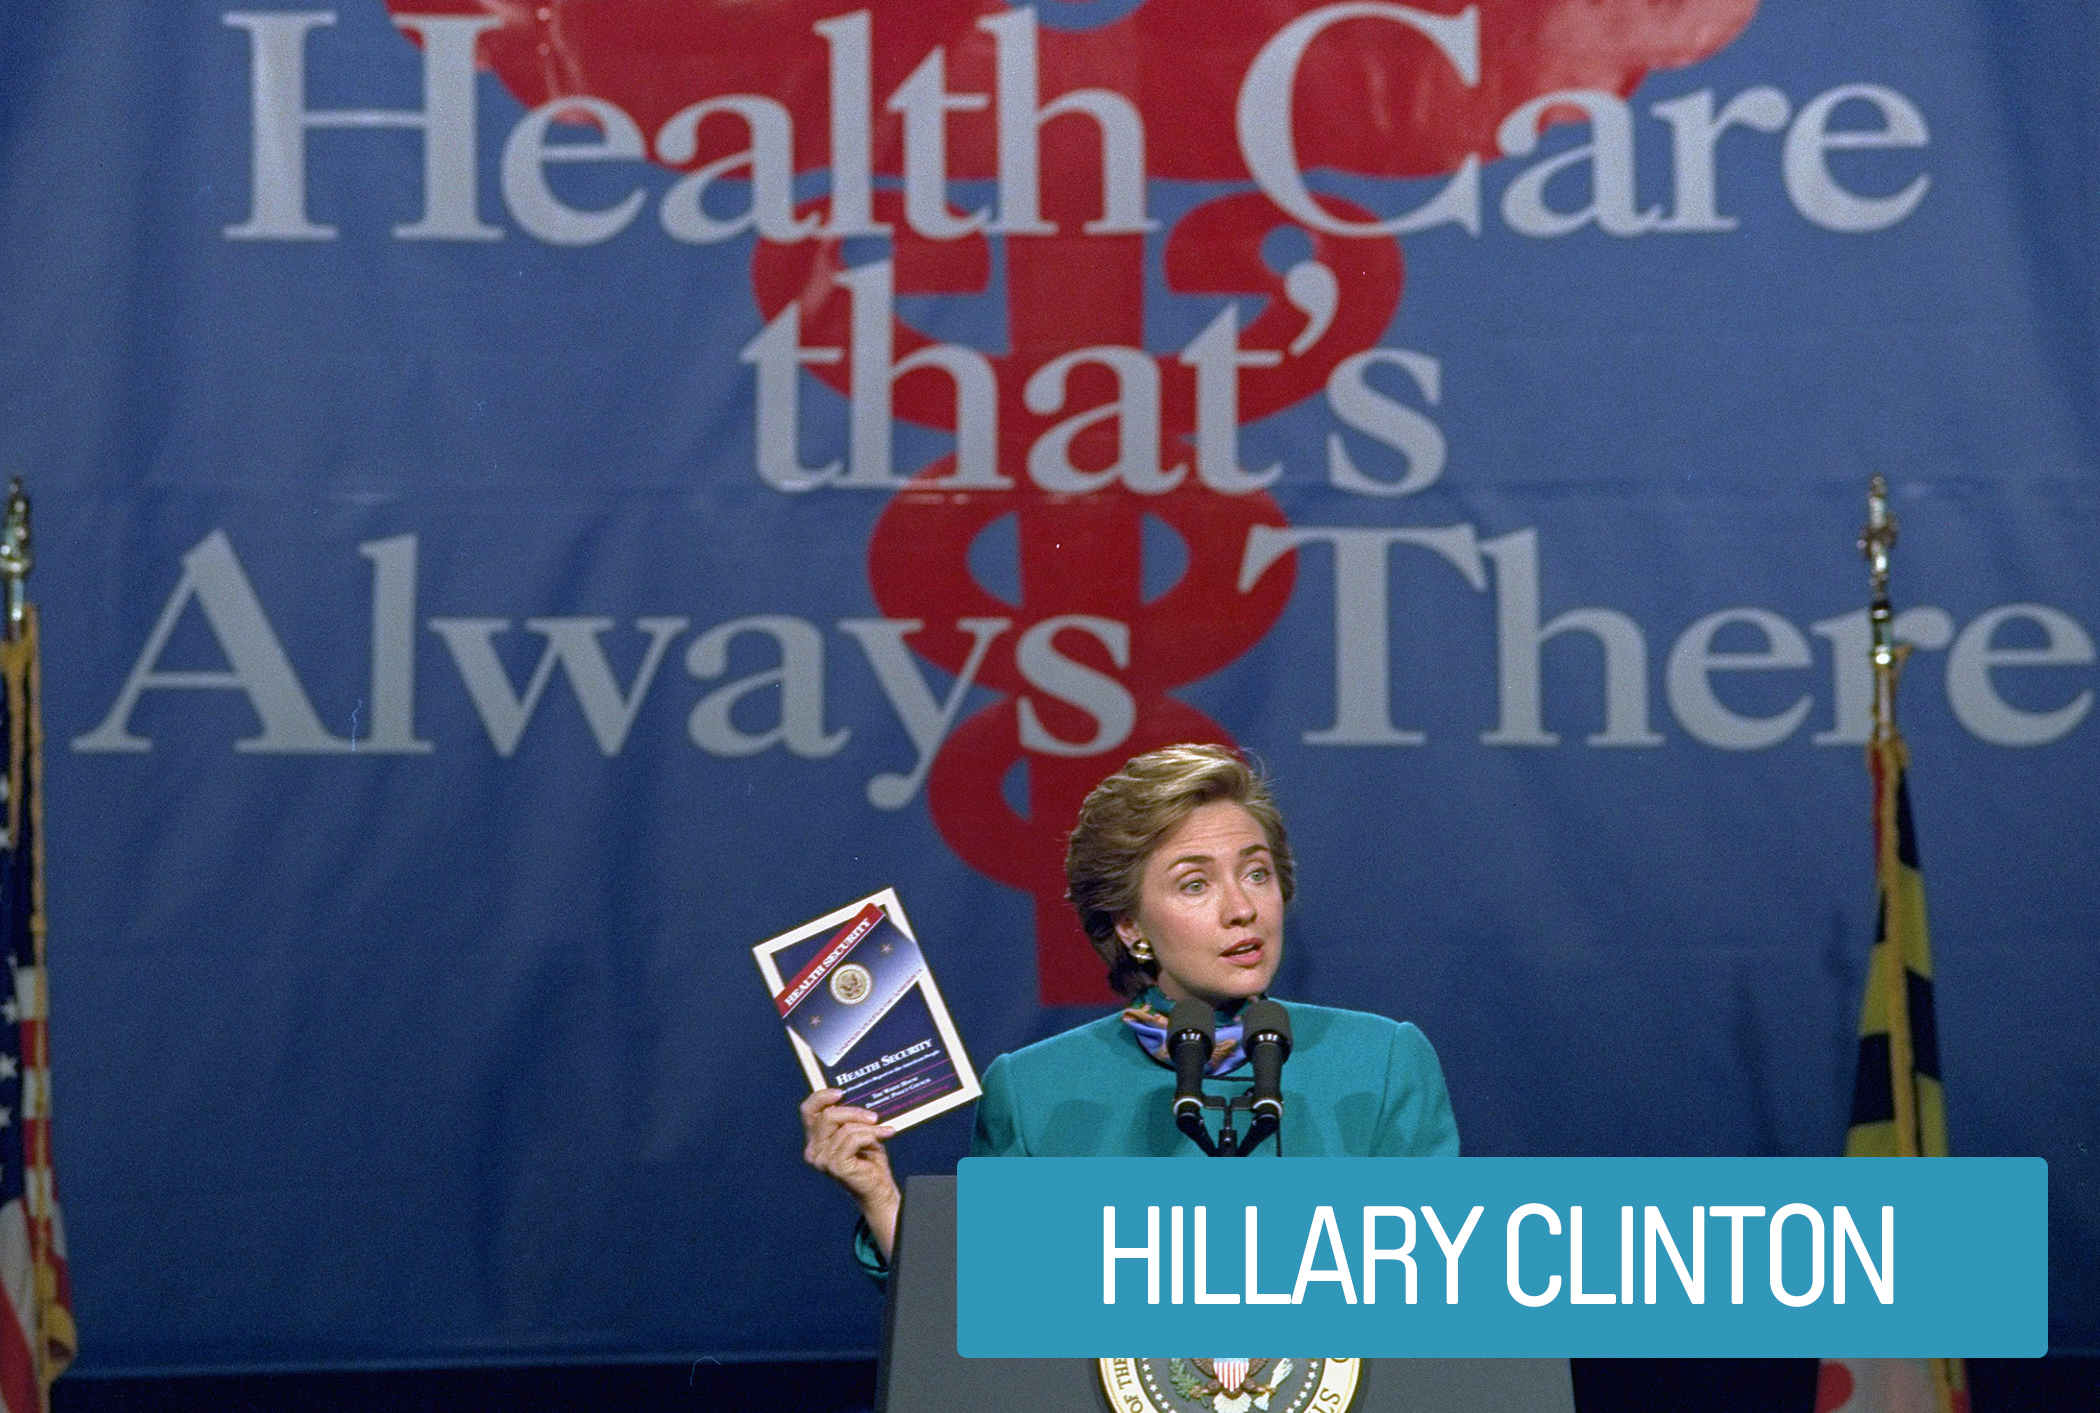 As head of the Task Force on Health Care Reform, Hillary Clinton brought together members of the health care industry with lawmakers, government officials and consumer rights advocates to strategize a solution to the growing numbers of uninsured. The plan did not pass congress, but it paved the way for Obamacare.